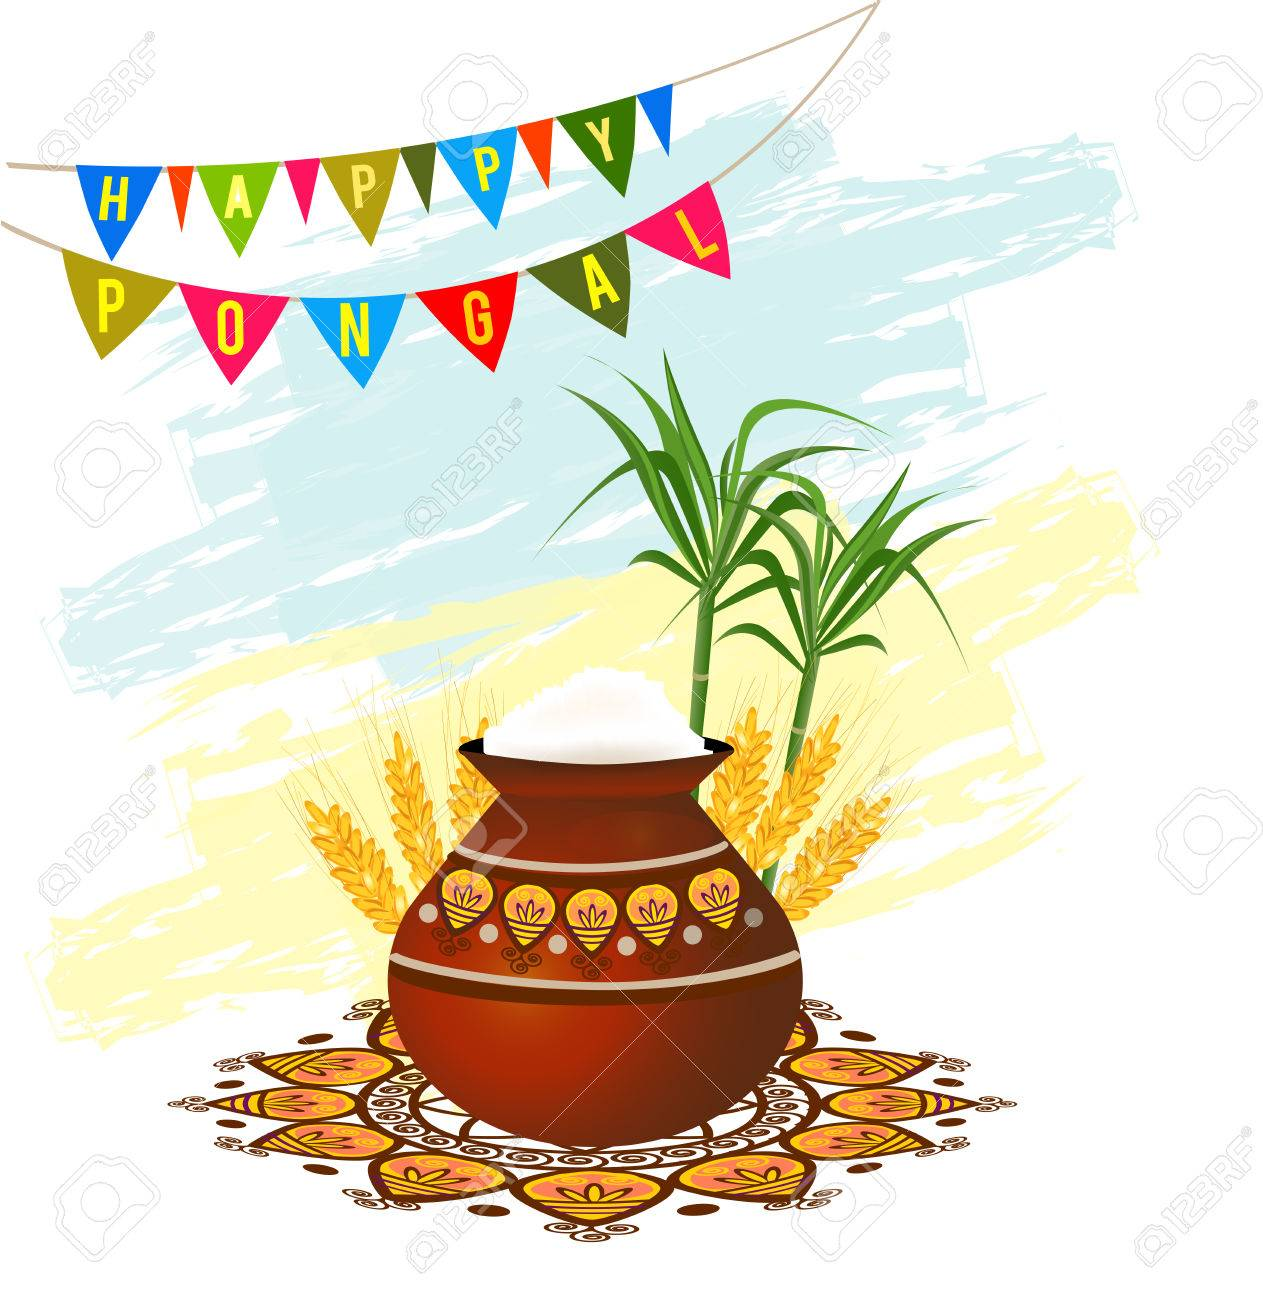 Happy pongal south indian harvesting festival greeting card with happy pongal south indian harvesting festival greeting card with pongal rice in a traditional mud pot kristyandbryce Images